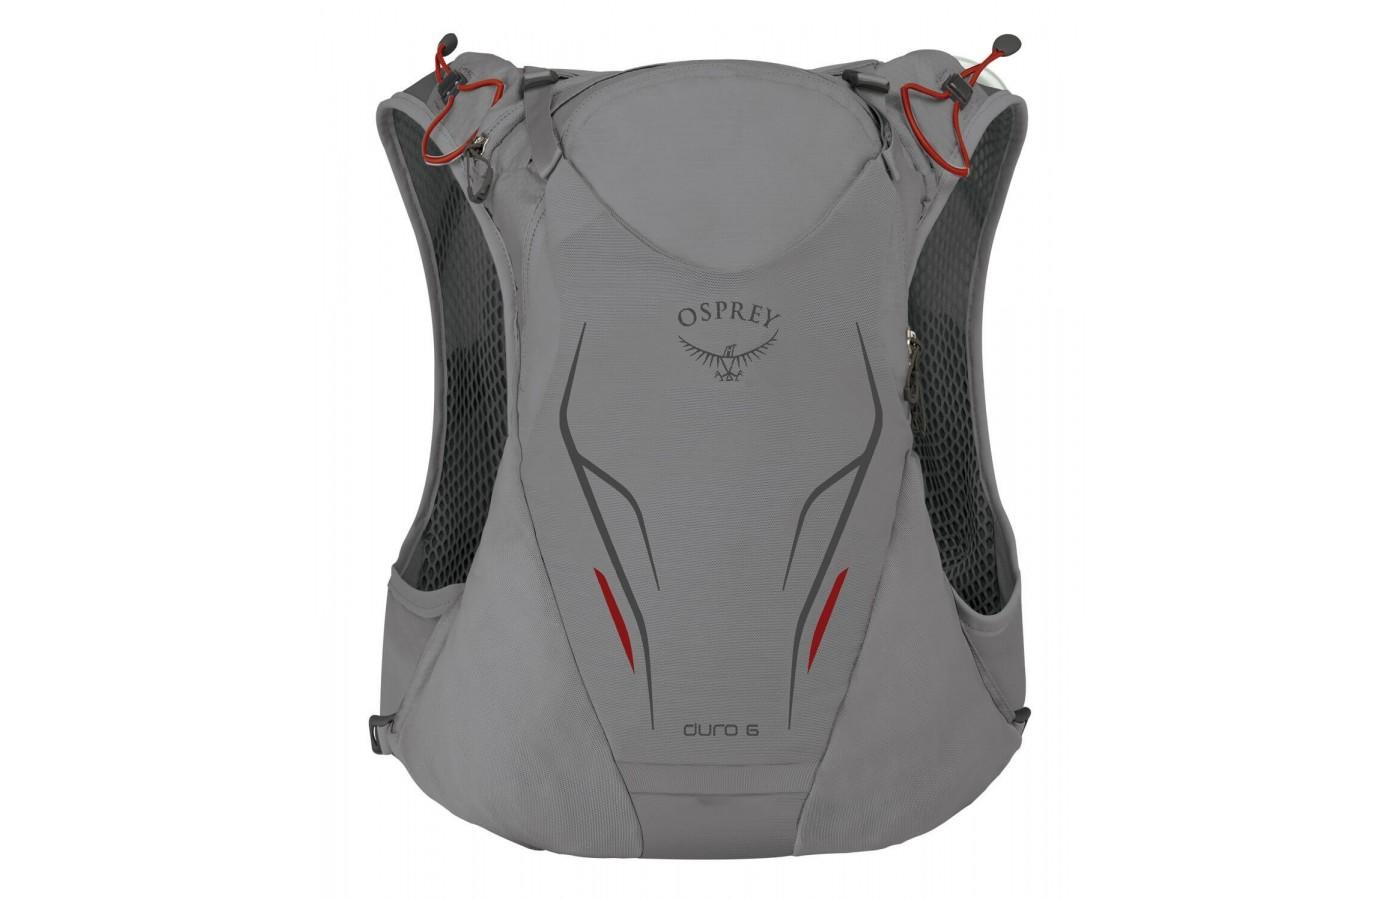 This vest features 7 external pockets to hold all of your necessary items.